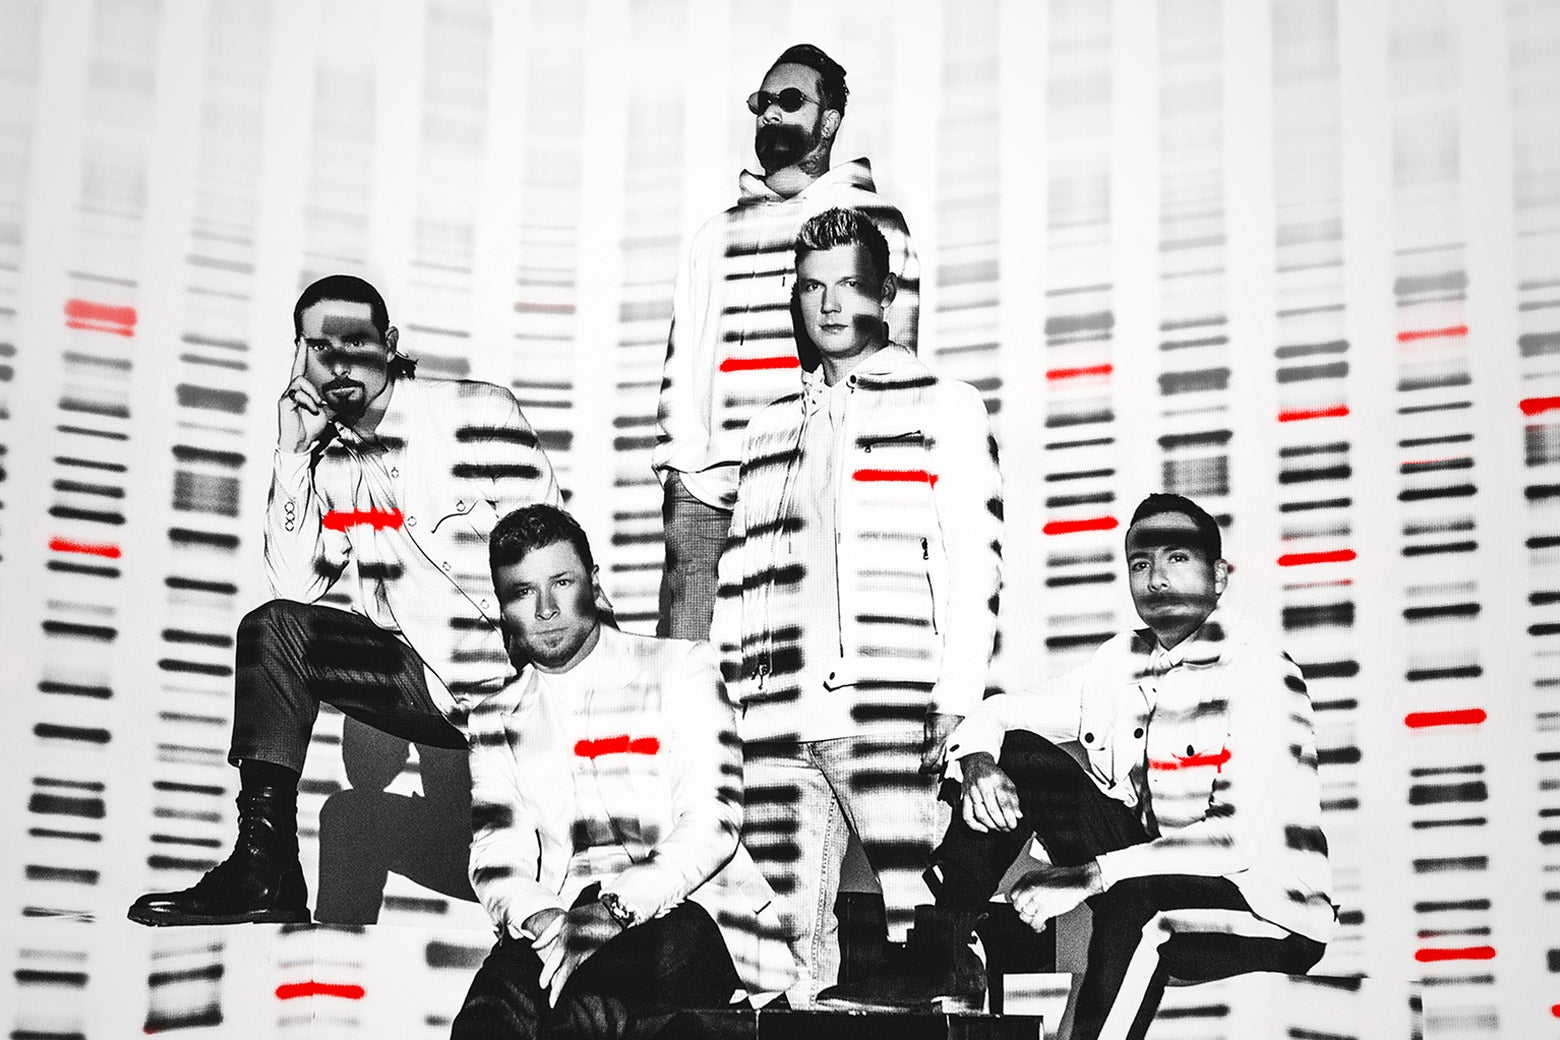 The Backstreet Boys posed, lit with red and black bands of color resembling a DNA sequencing image.